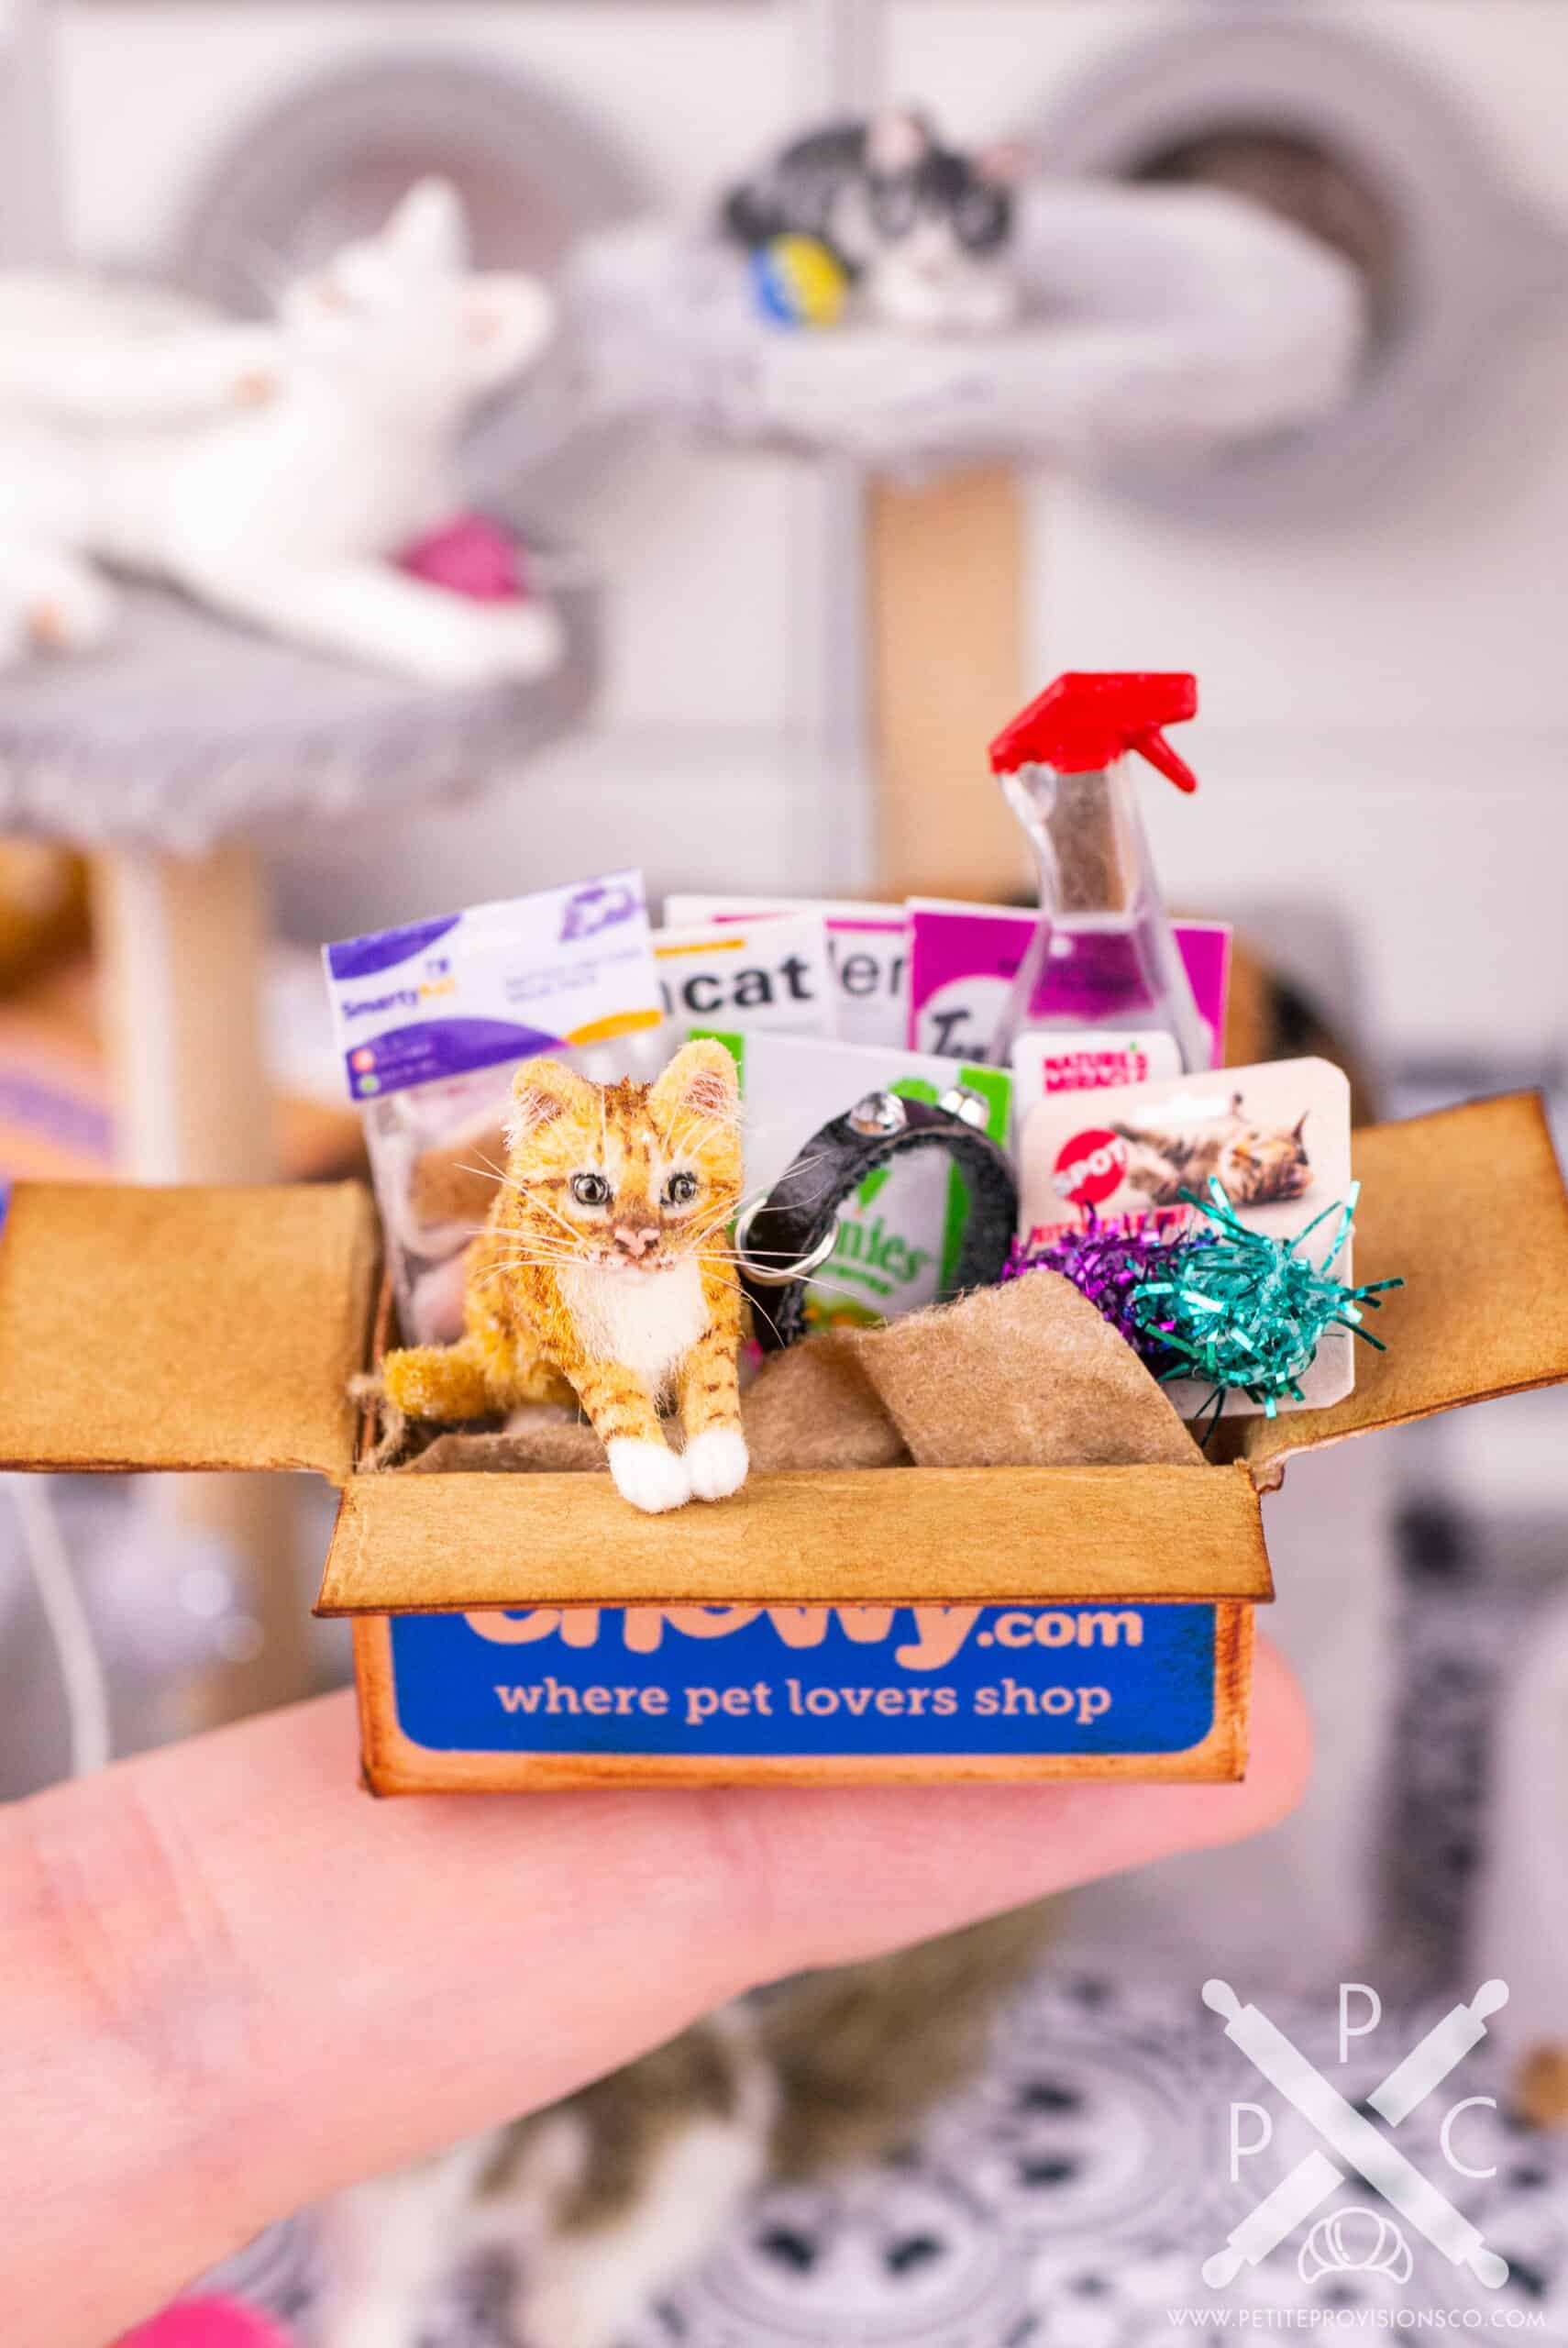 One inch scale orange tabby kitten in a shipping box from Chewy in a dollhouse miniature scene by Erika Pitera, The Petite Provisions Co.